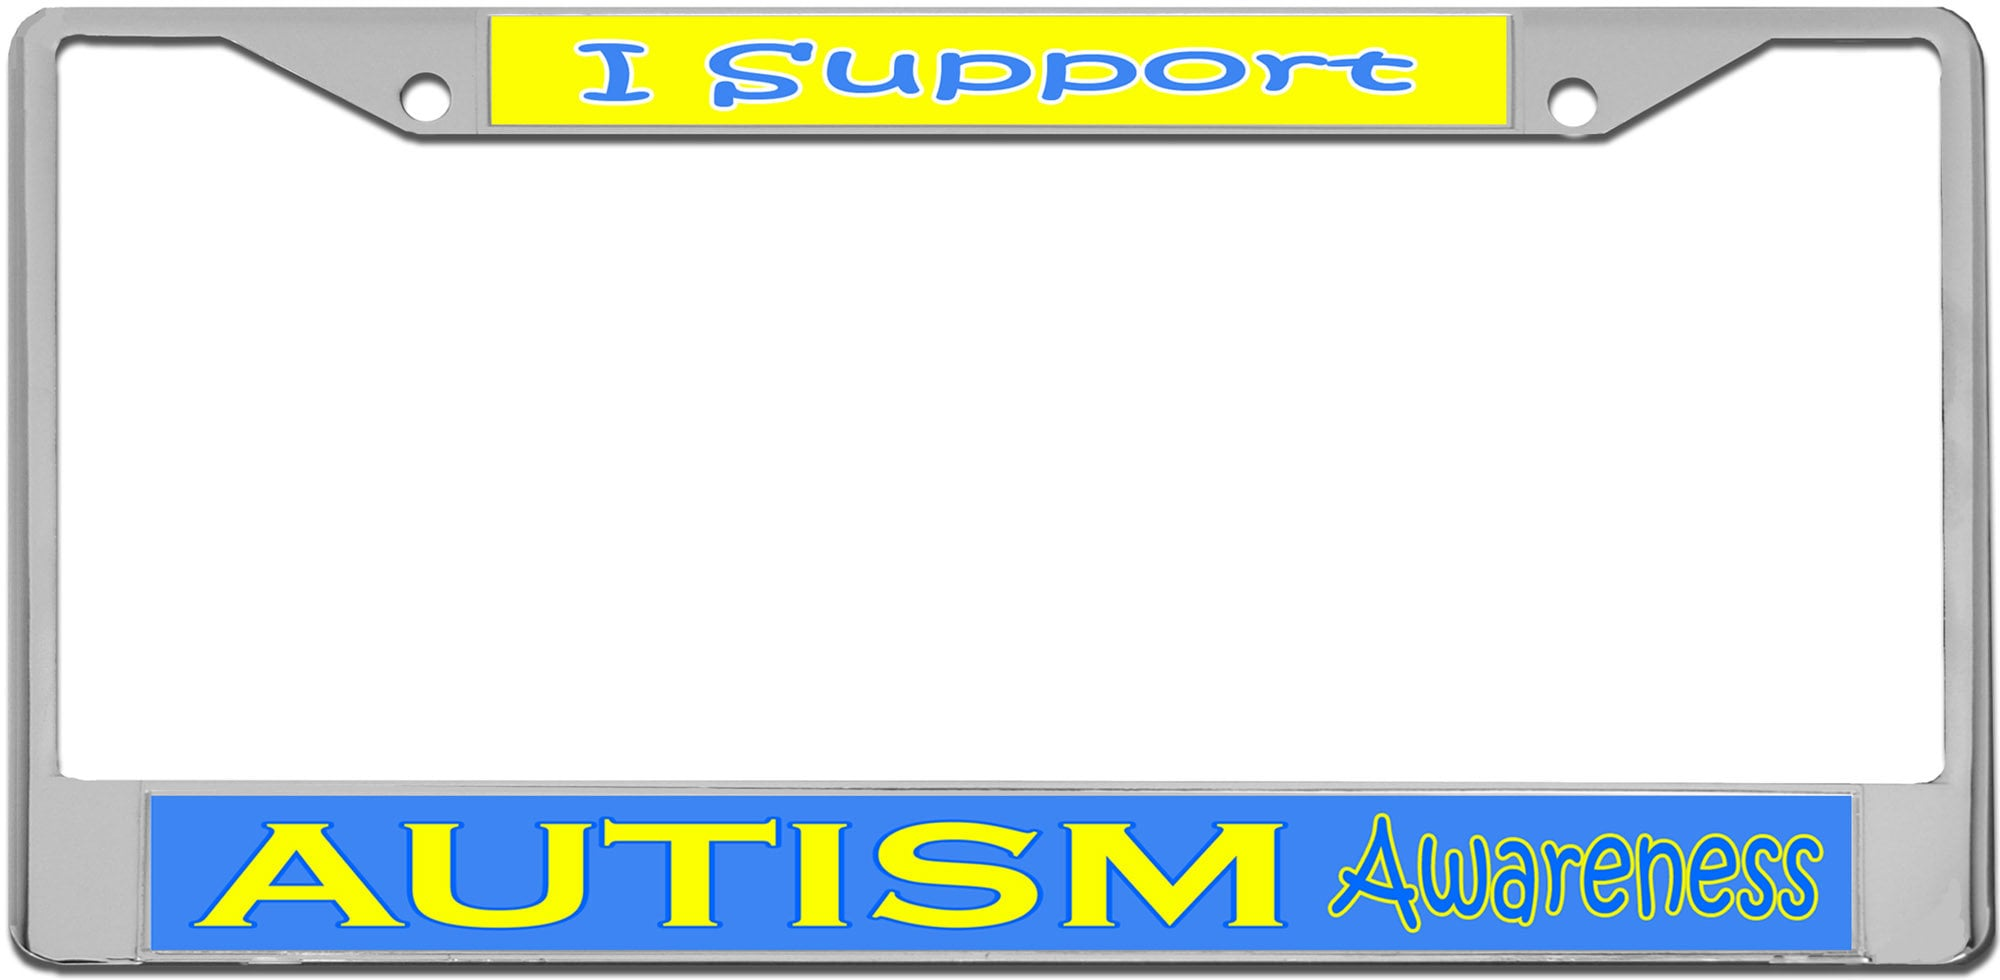 Autism Awareness License Plate Frame   Etsy